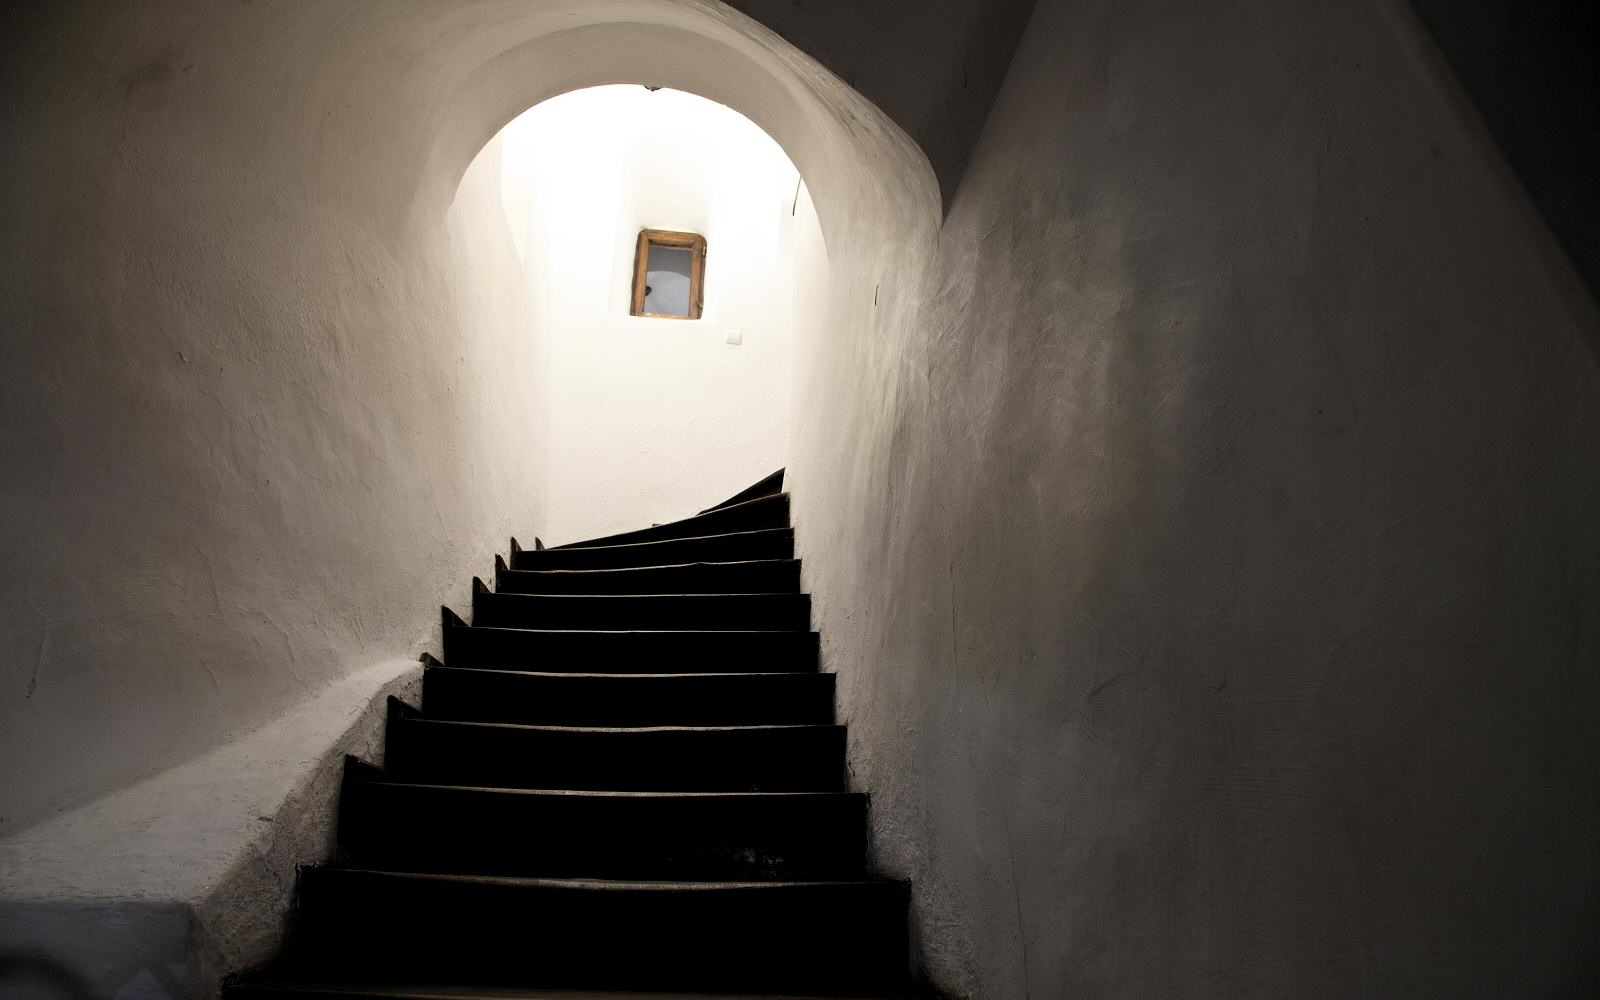 Staircases with walls and ceilings that curve around them link the various floors